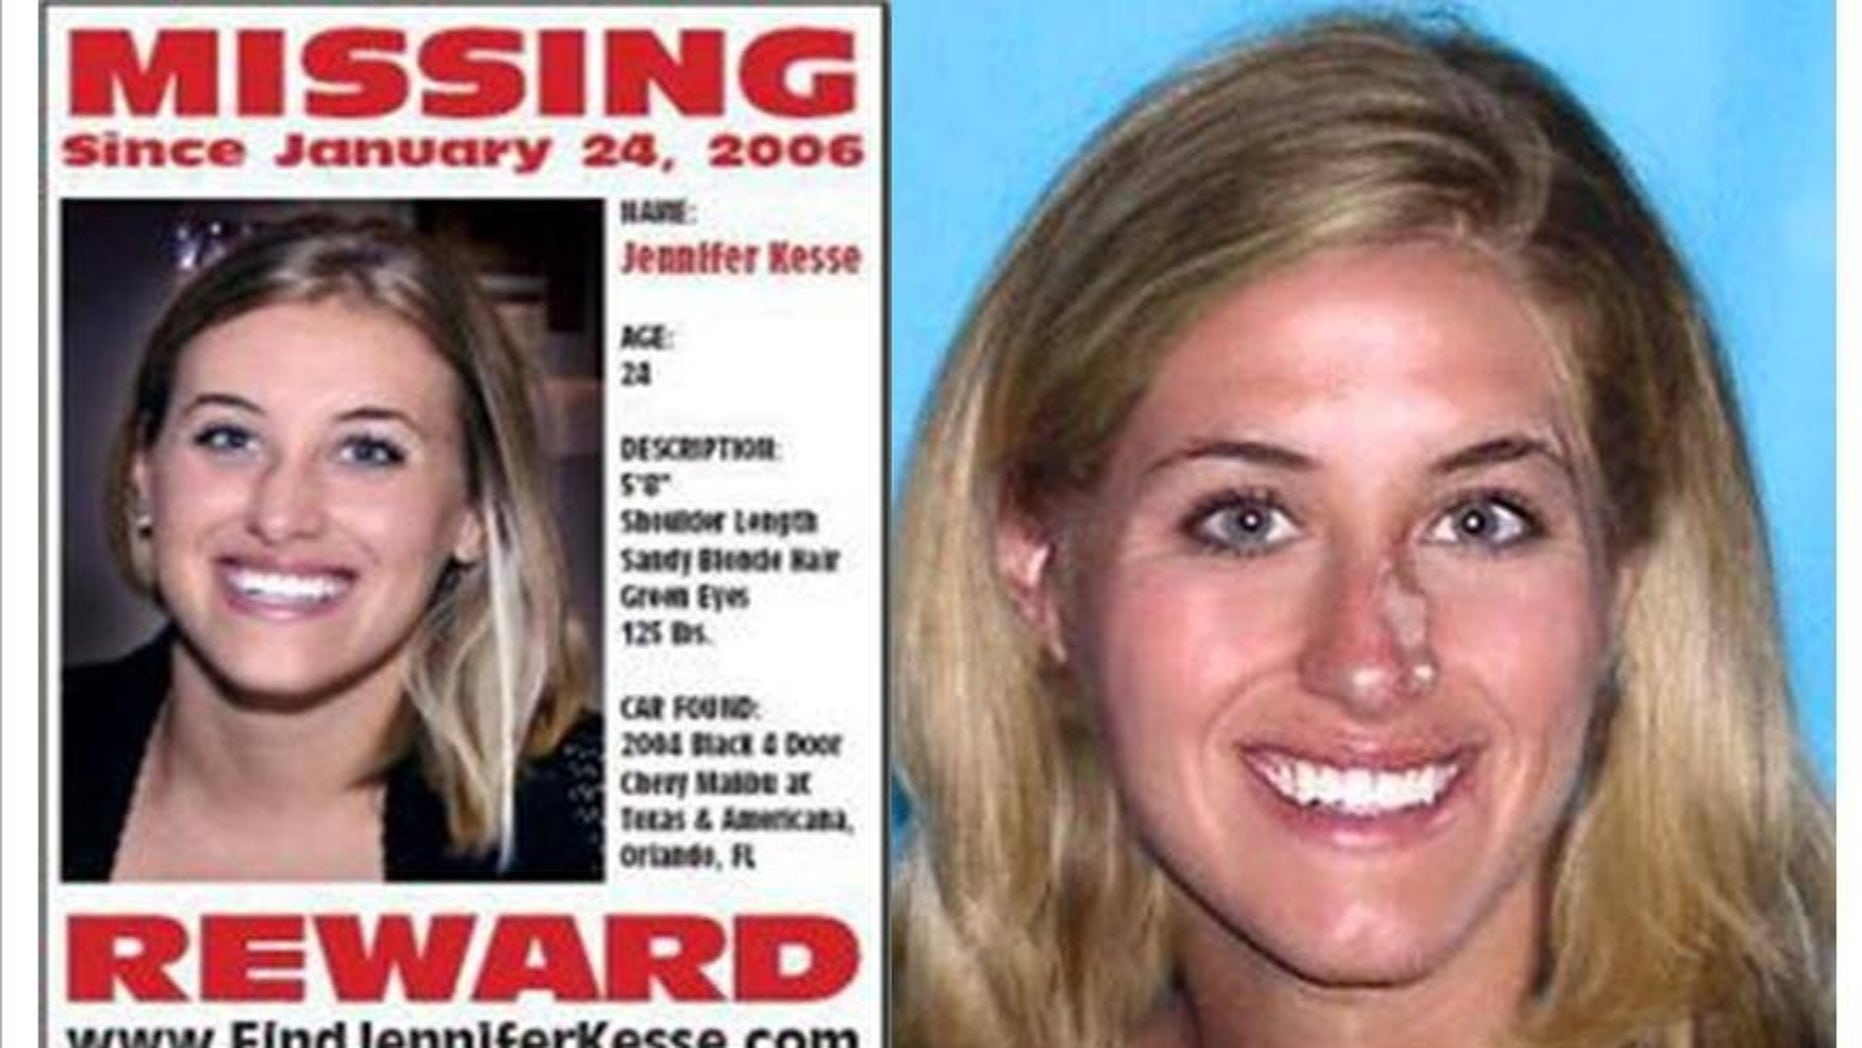 Kesse is pictured on the left at age 24. Authorities age-progressed her image, pictured right, to show what she would look like 10 years later.